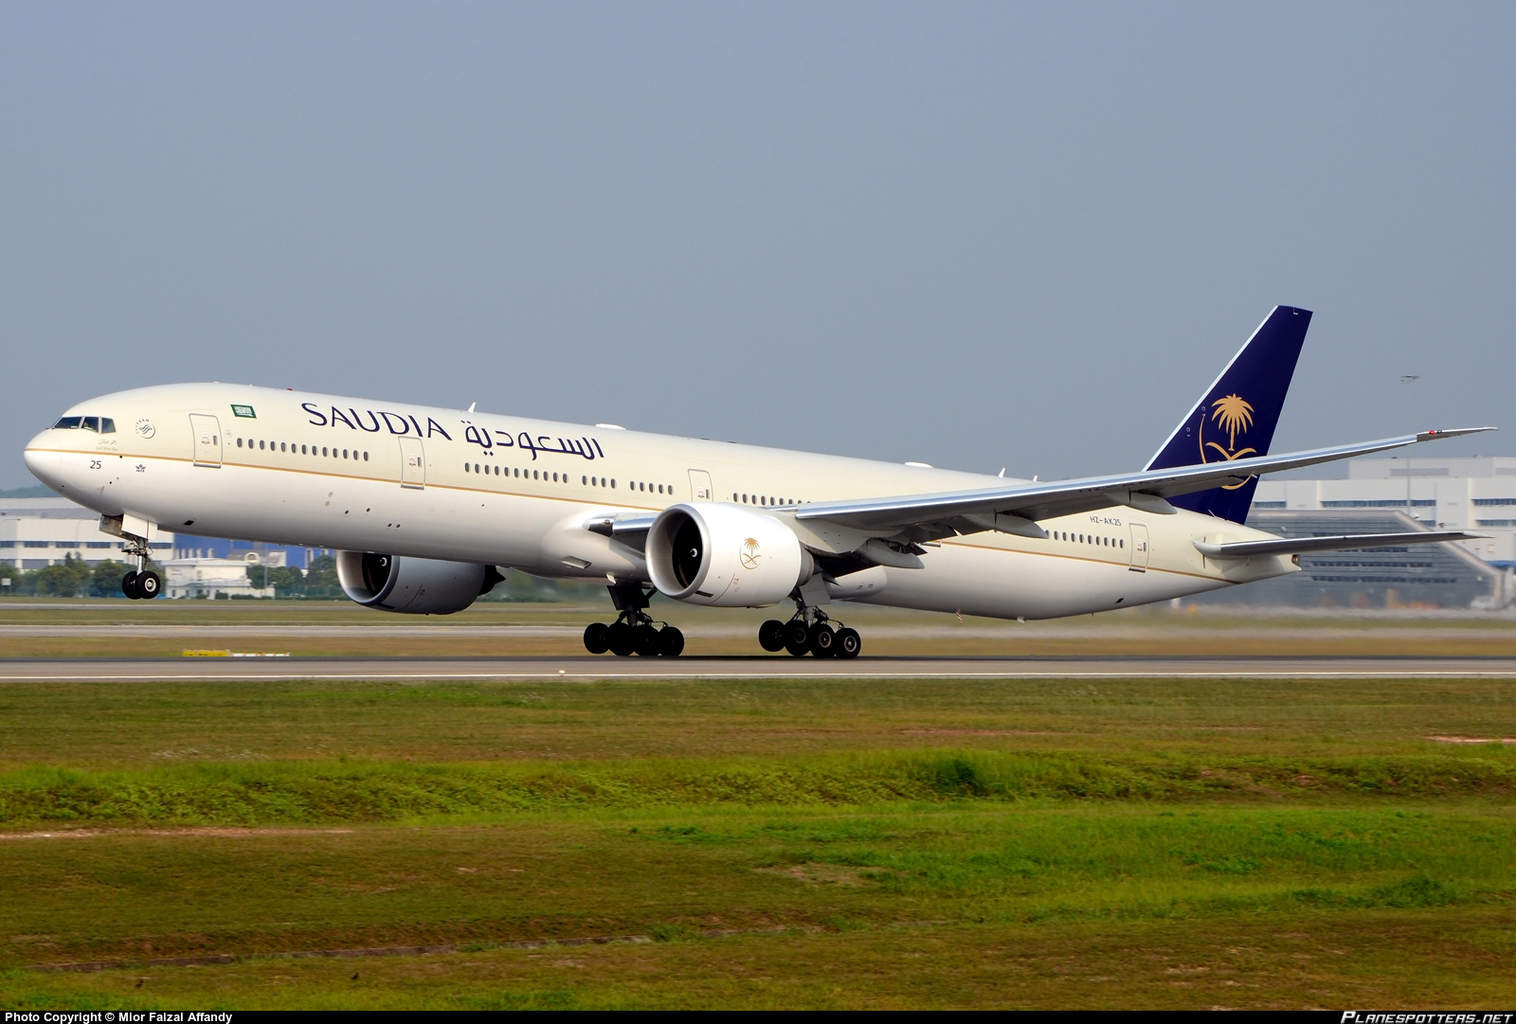 Saudia Boeing 777-368(ER) with dangerous goods has cabin fill with smoke